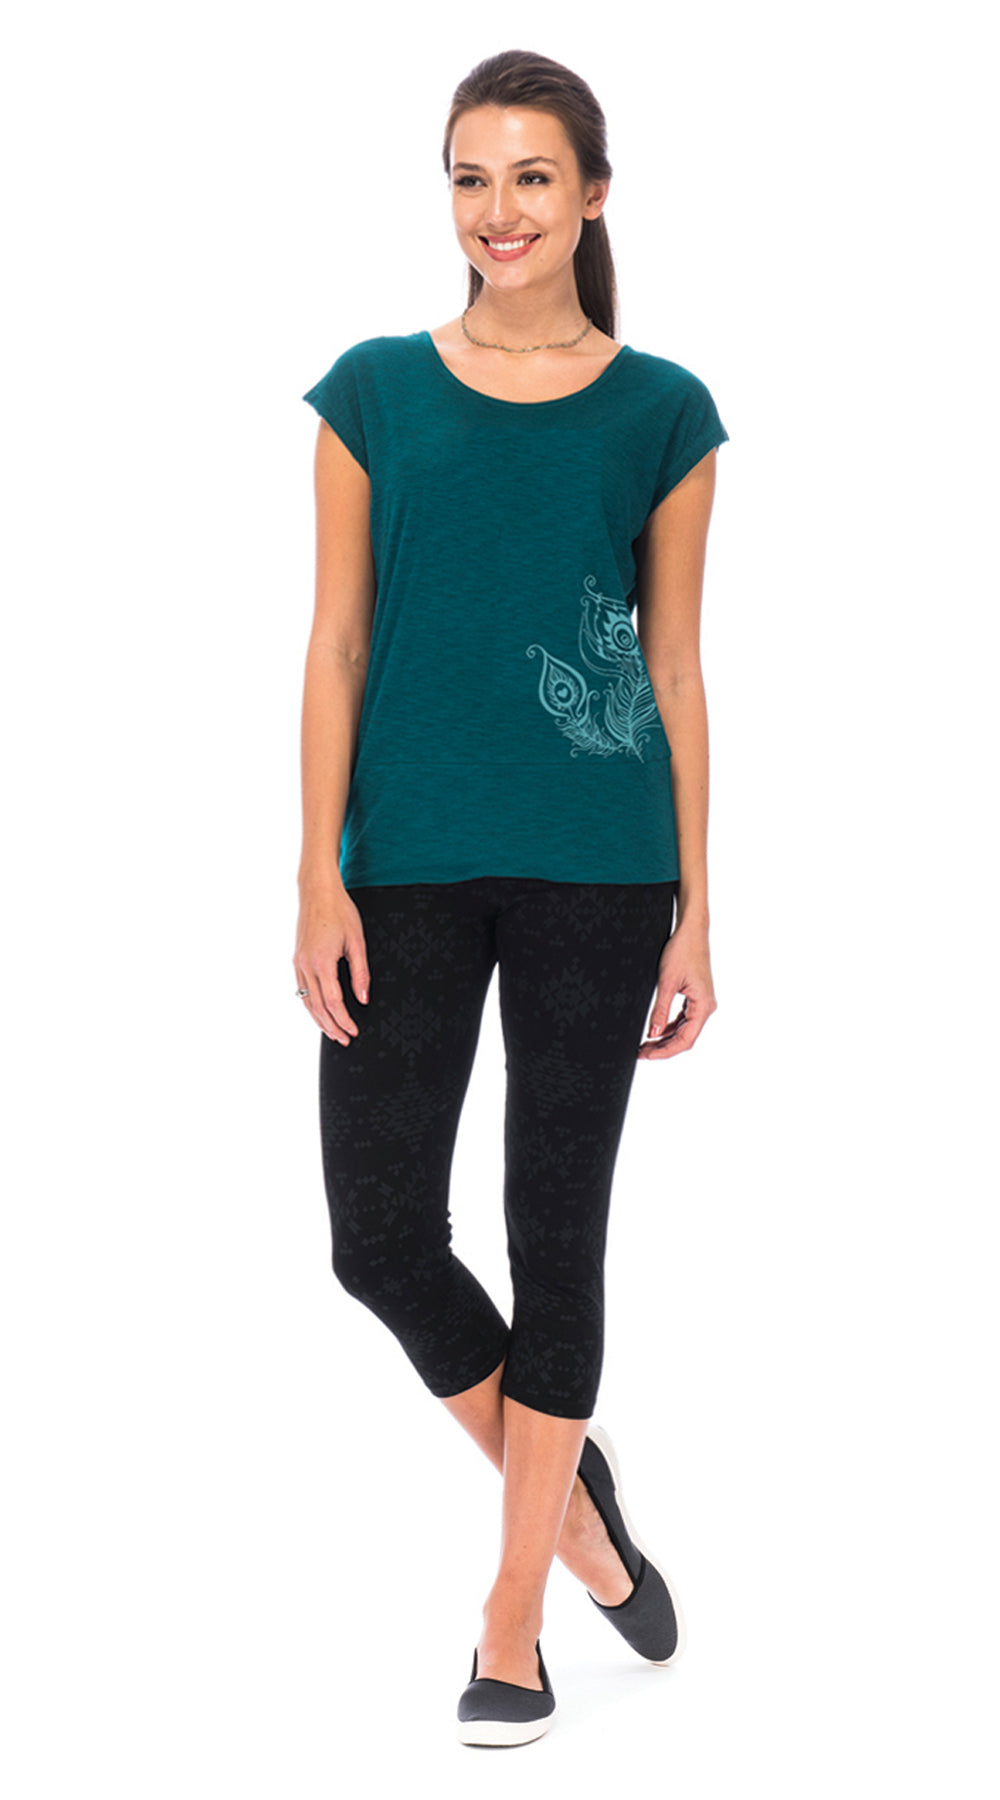 Christa Top - peacock feathers - organic cotton